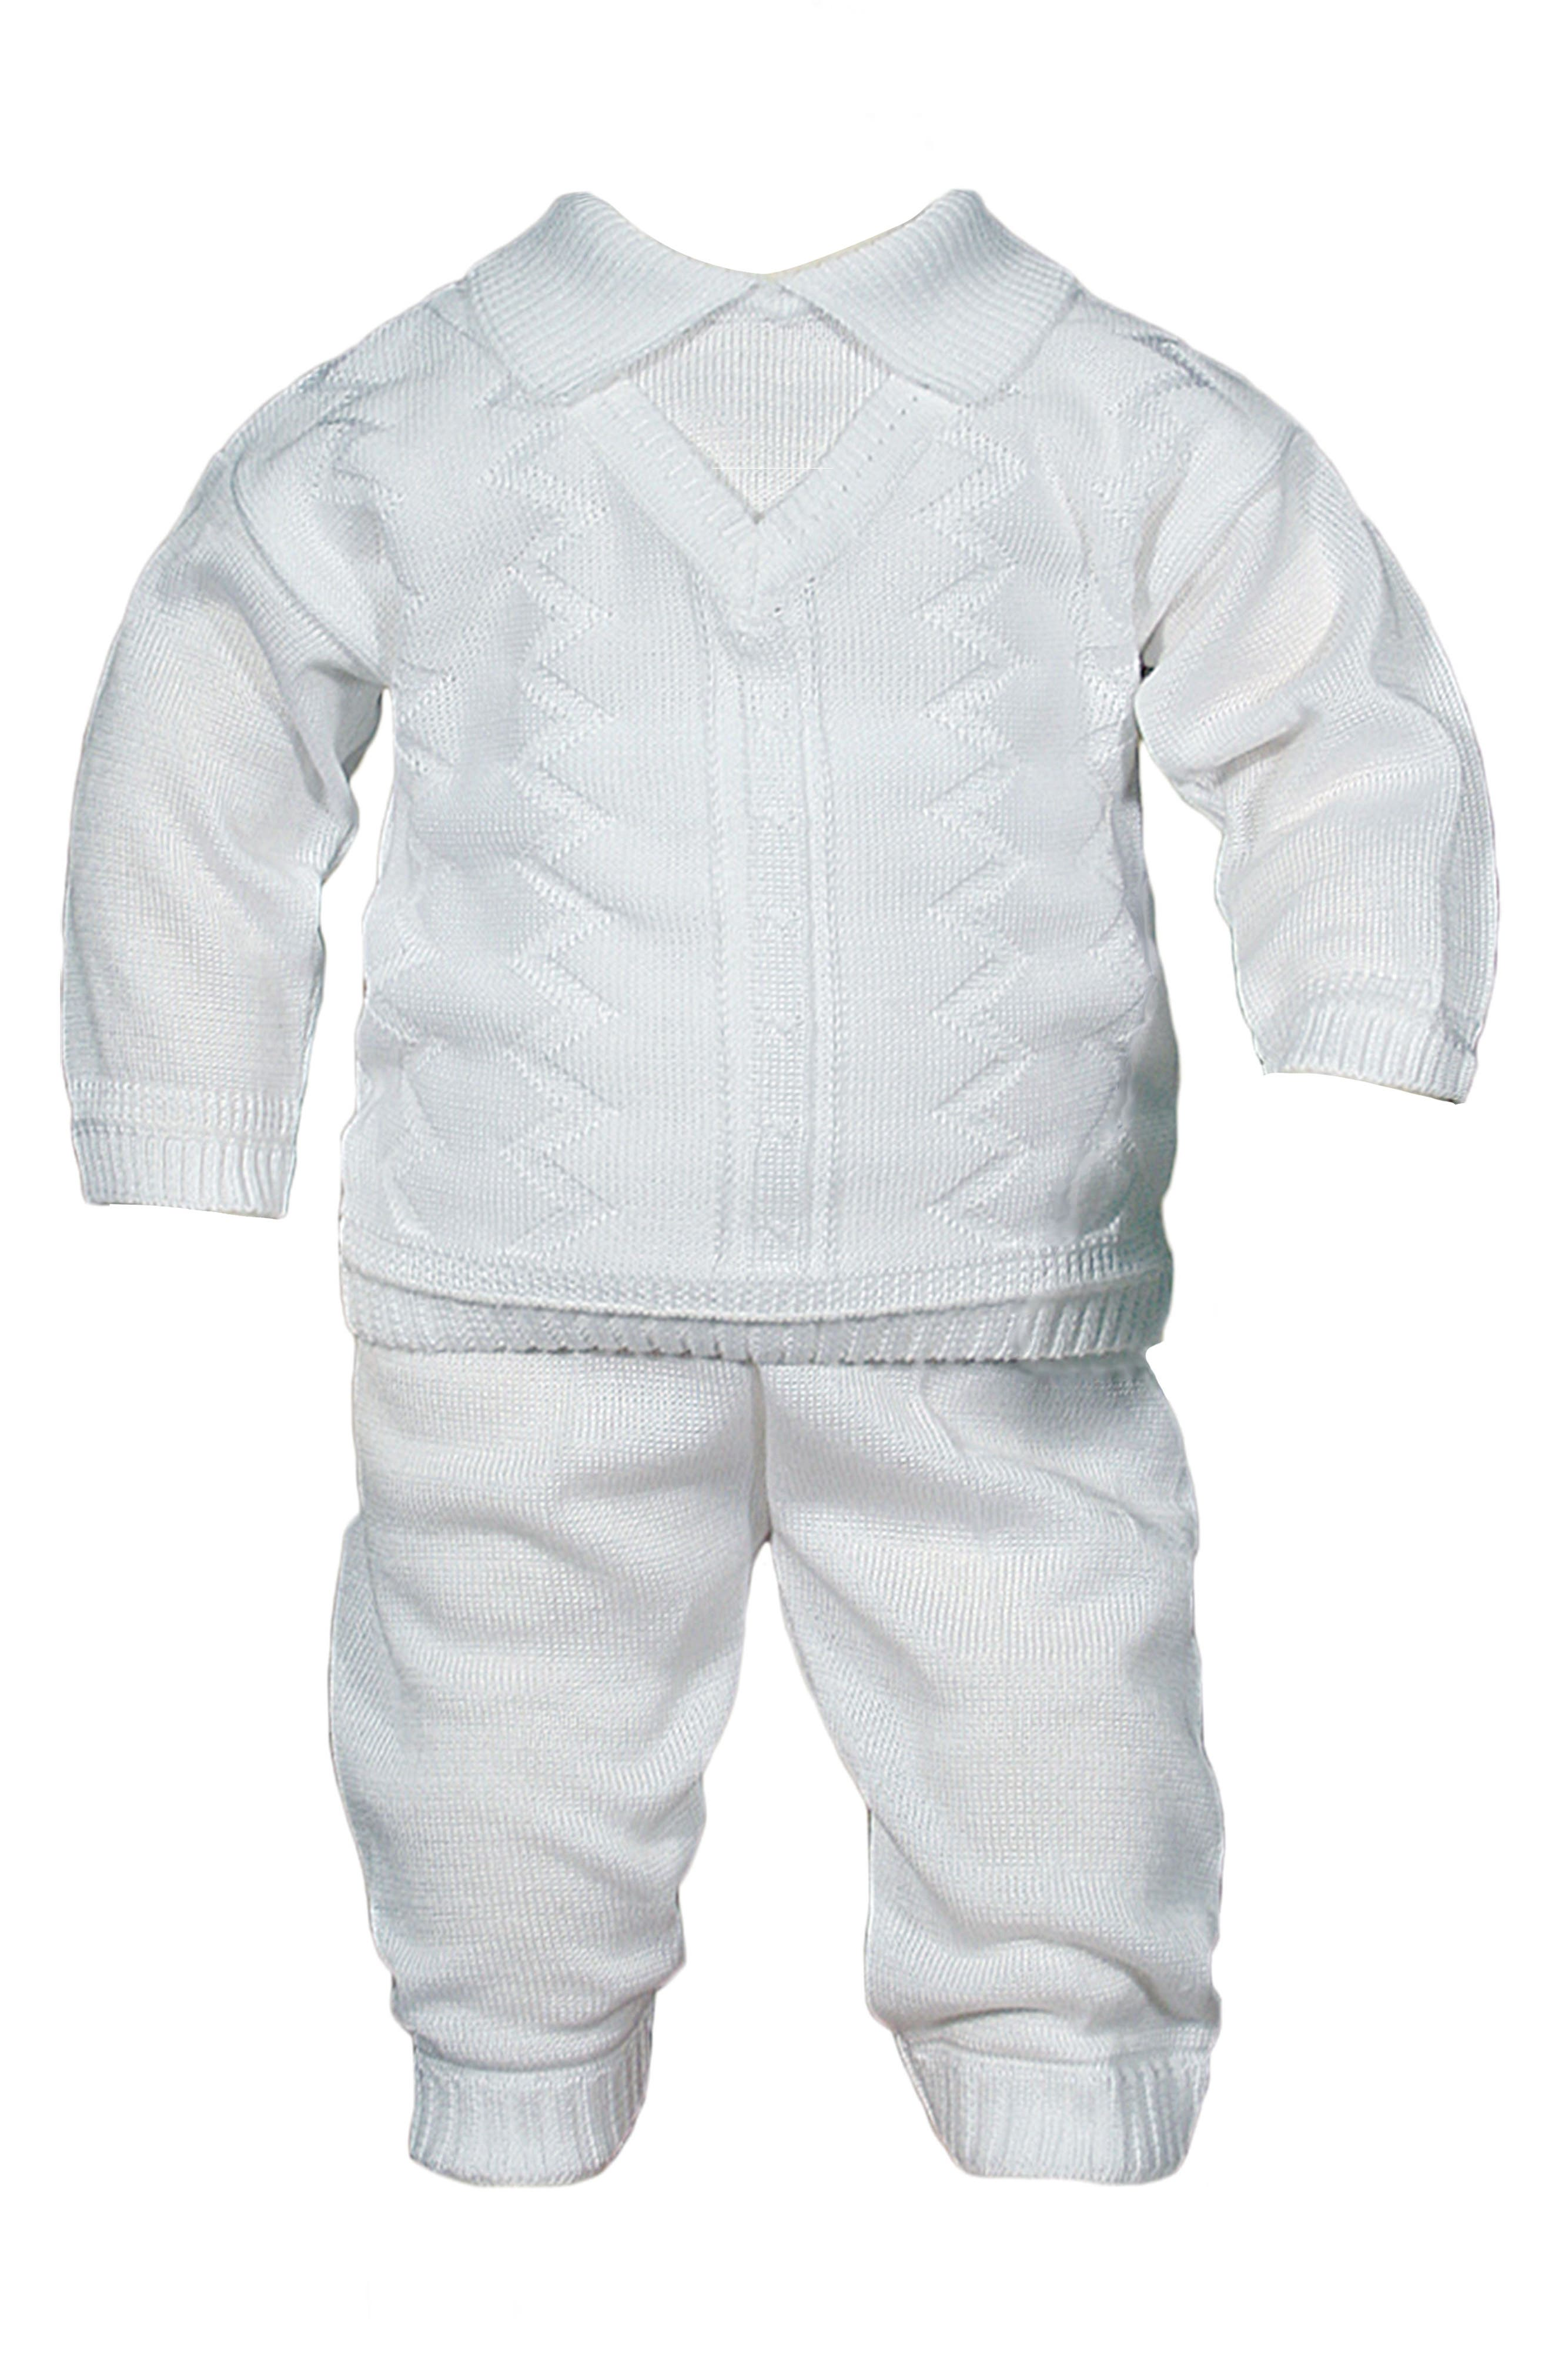 Alternate Image 1 Selected - Little Things Mean A Lot Knit Shirt & Pants Set (Baby Boys)